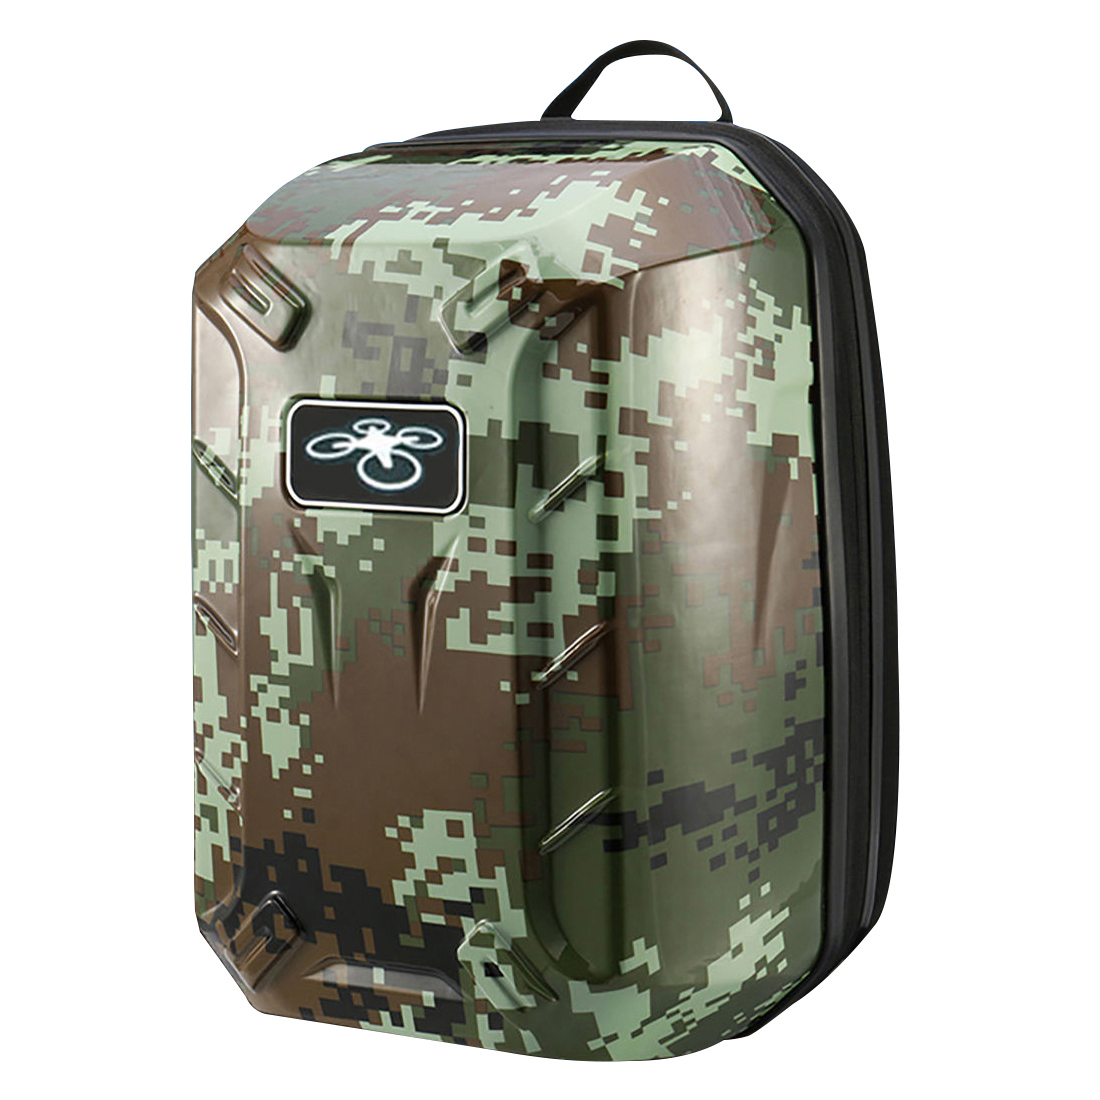 COSW Traveling Waterproof Backpack Shoulder Bag Hard Shell Case For DJI Phantom 3Color:Army green vsen traveling waterproof backpack shoulder bag hard shell case for dji phantom 3color army green